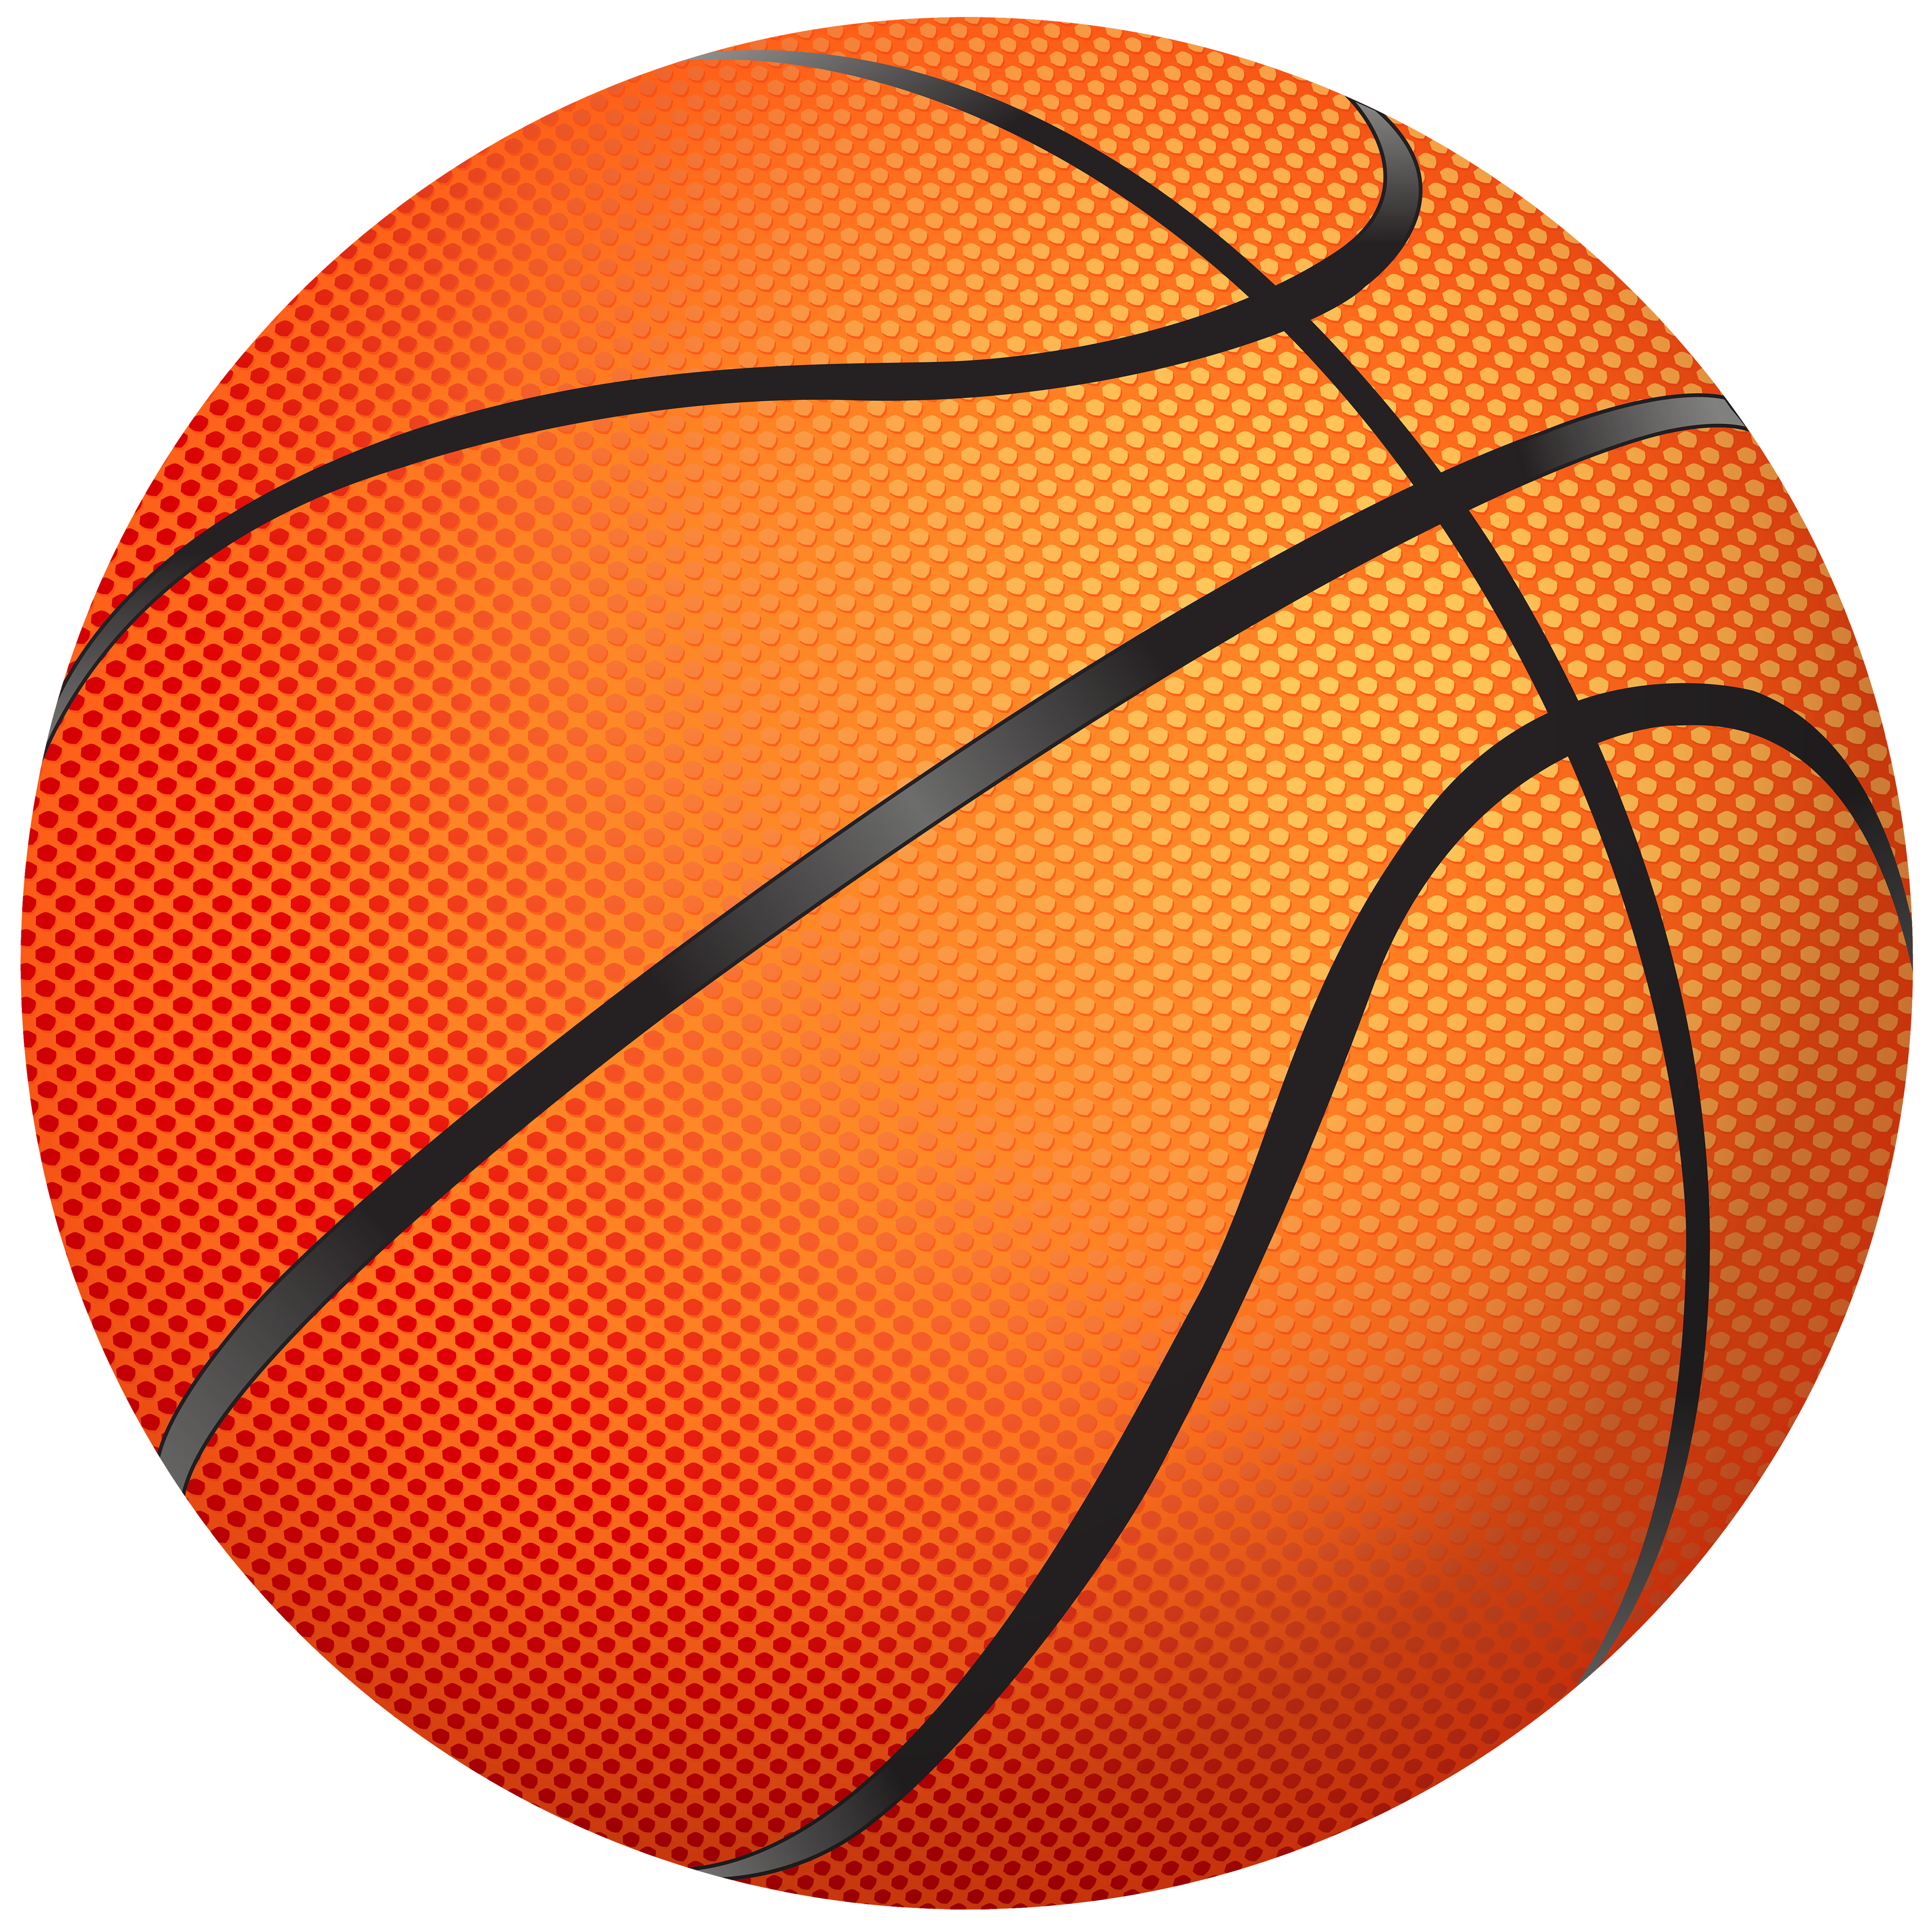 4000x3990 Basketball Png Clipart